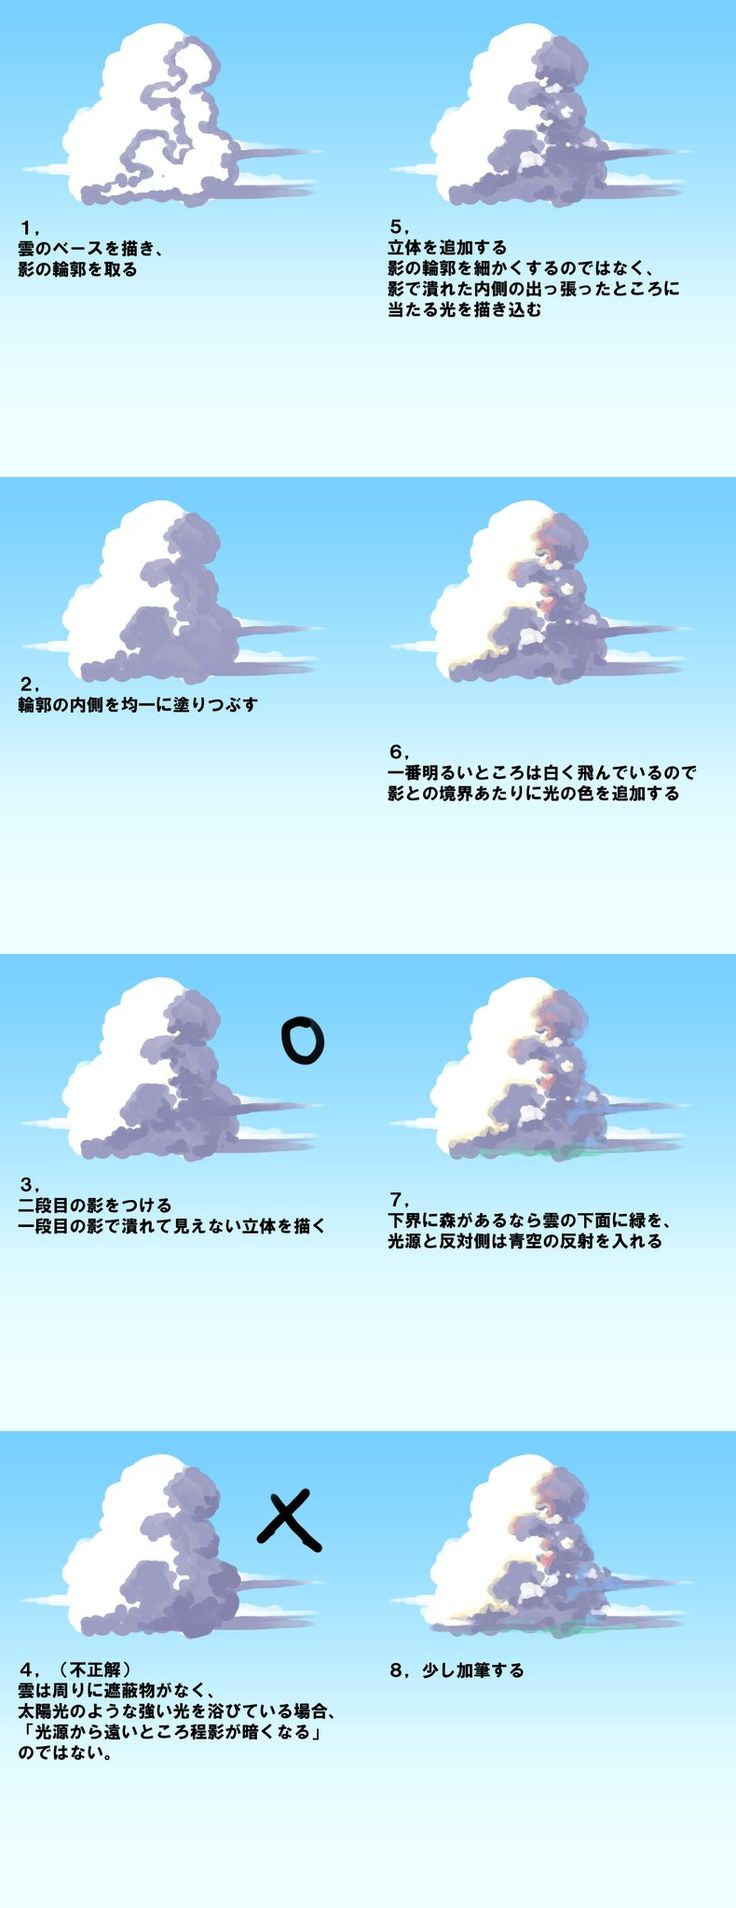 How to draw and shade clouds